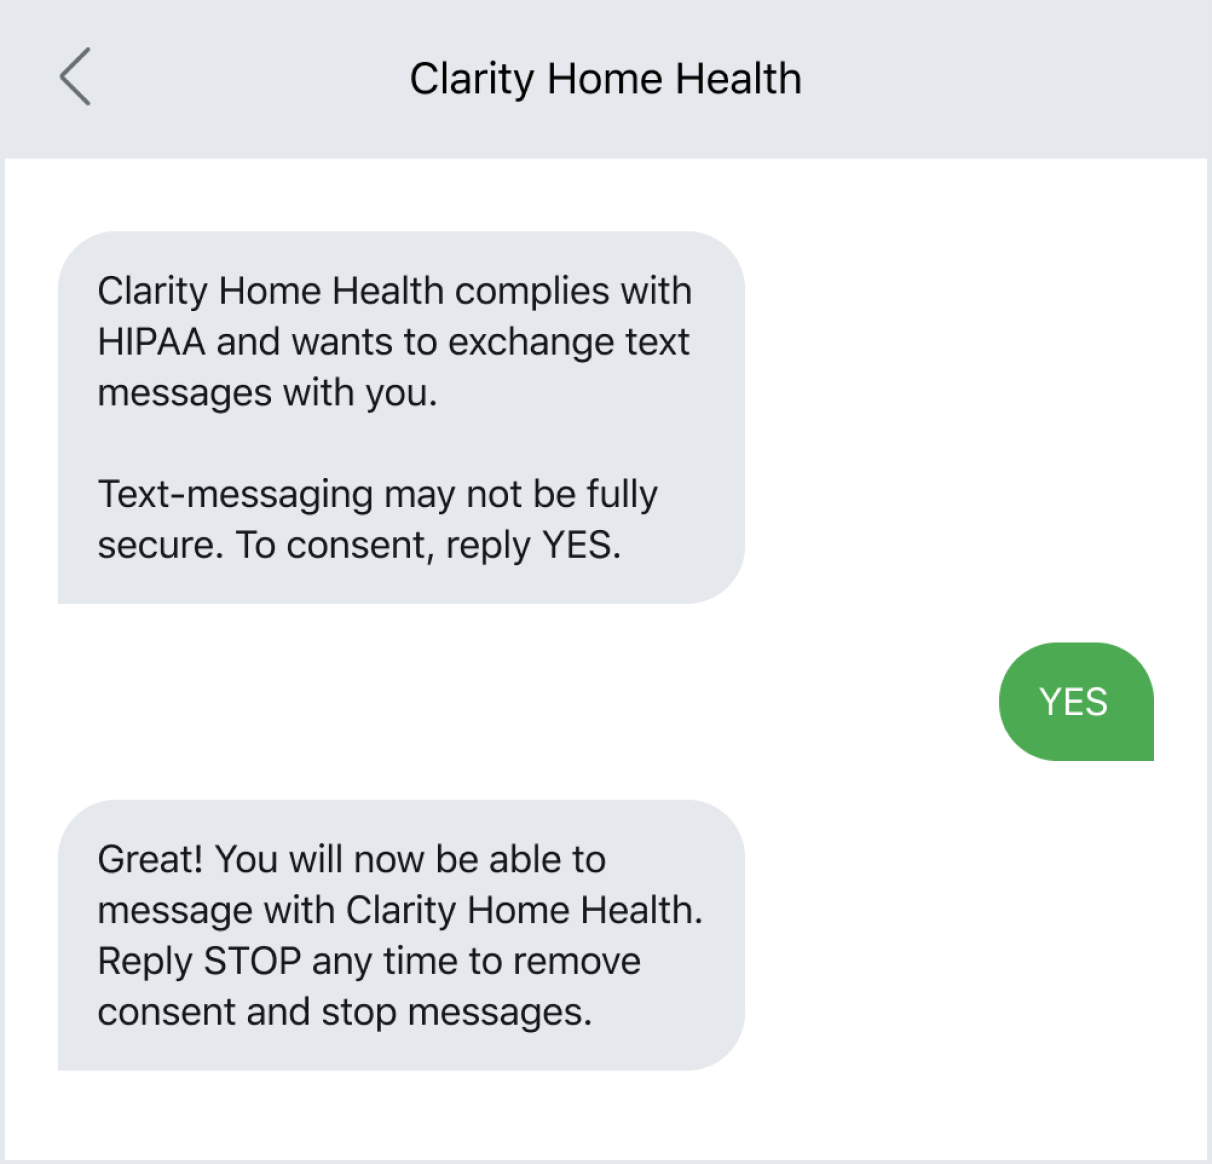 Home healthcare business using HIPAA compliant texting